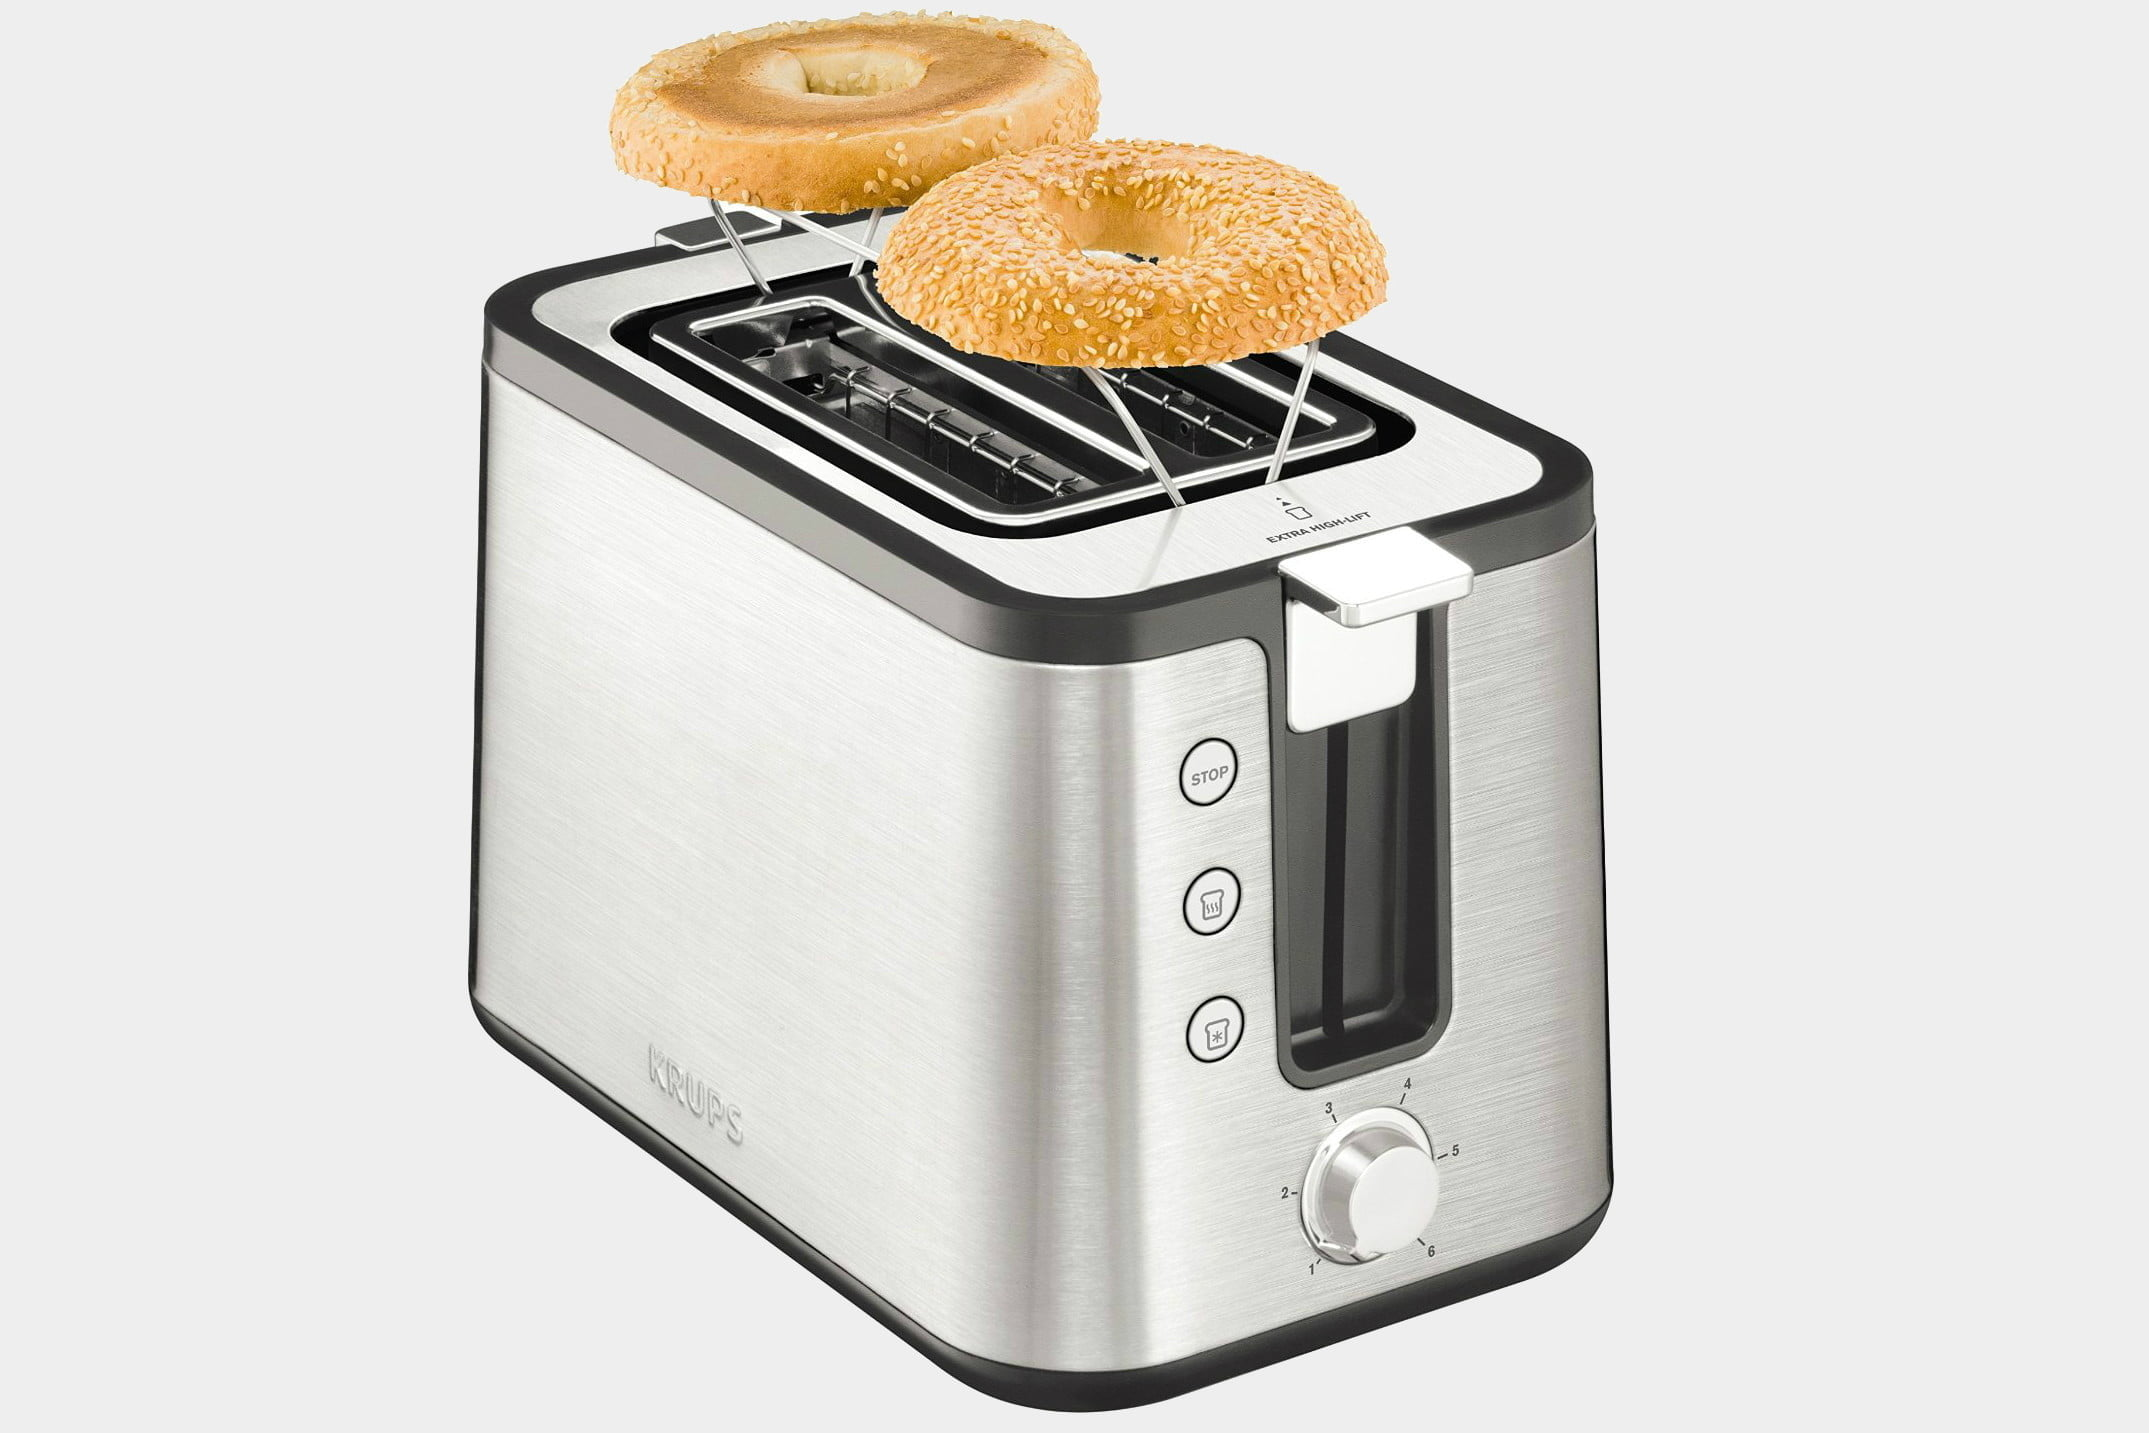 stainless panini steel grill kalorik maker products jungleoutlet toaster fhg and